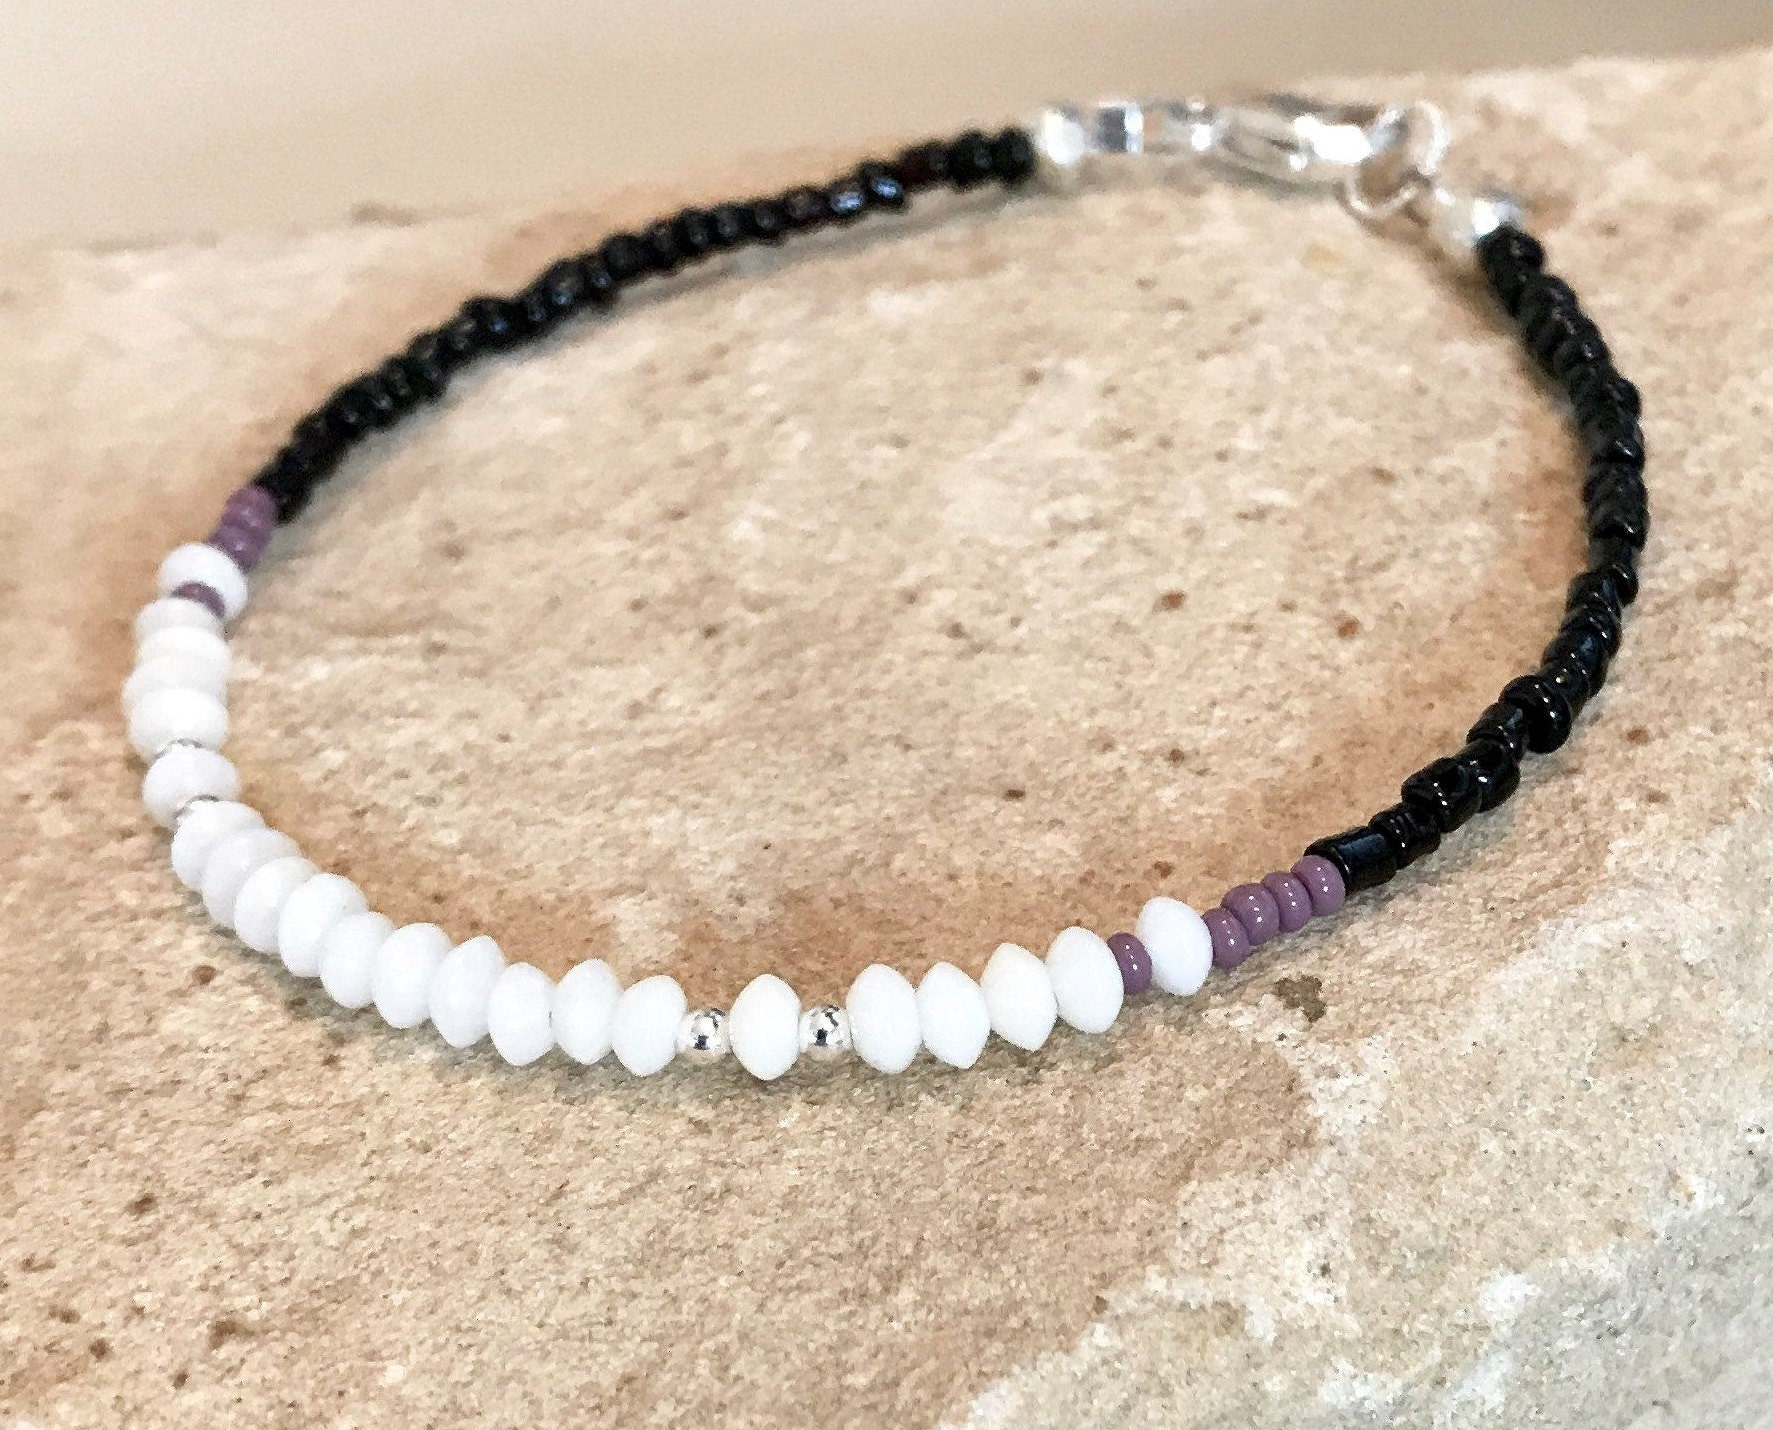 sterling silver bracelet African seed bead bracelet black and white seed bead bracelet boho bracelet gift for wife gift for her